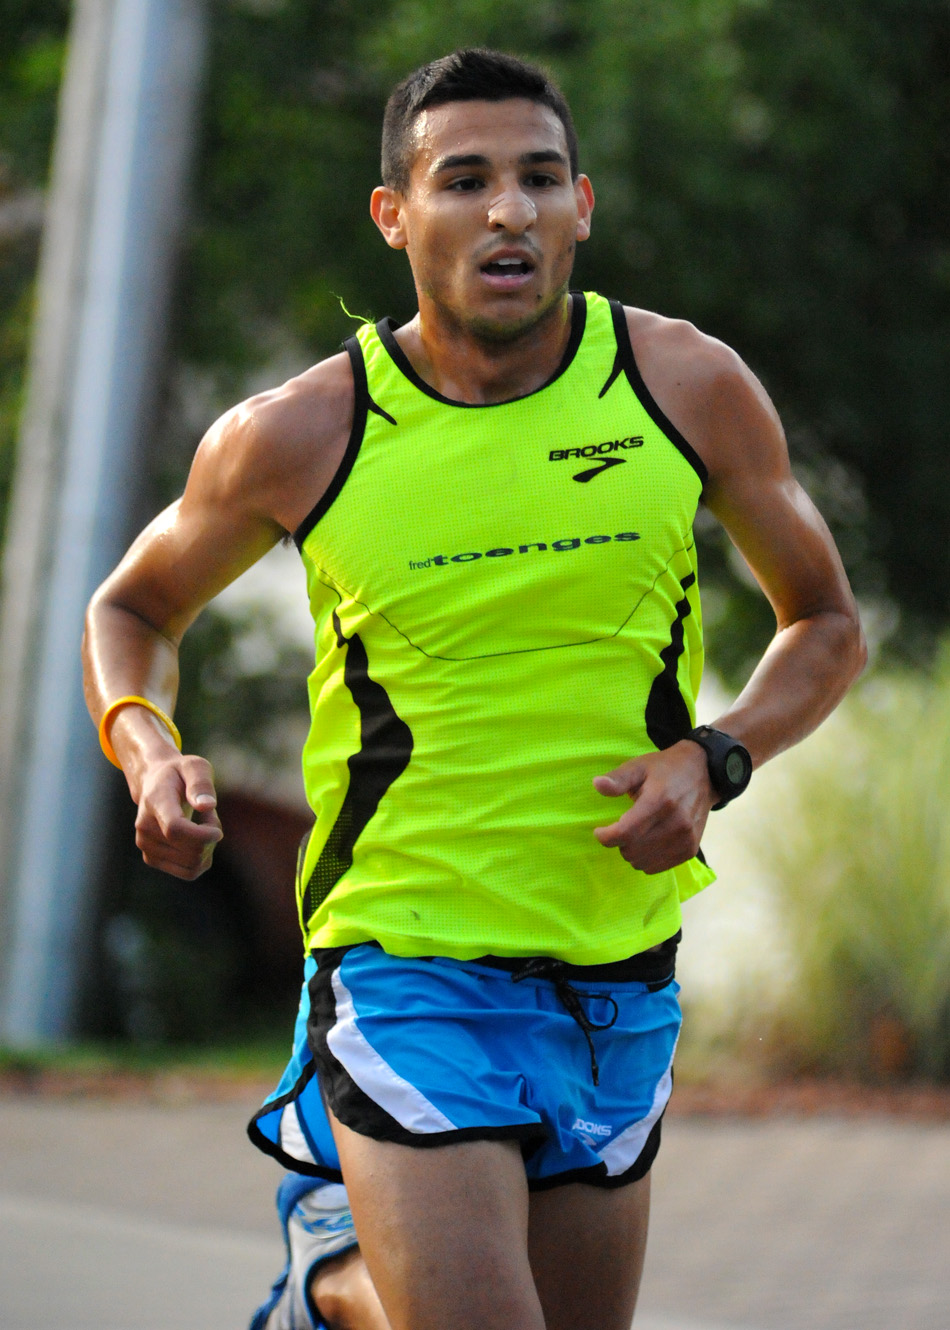 Elias Rojas retained his 3.3-mile title at the Flotilla Road Race with a 16:32 winner.